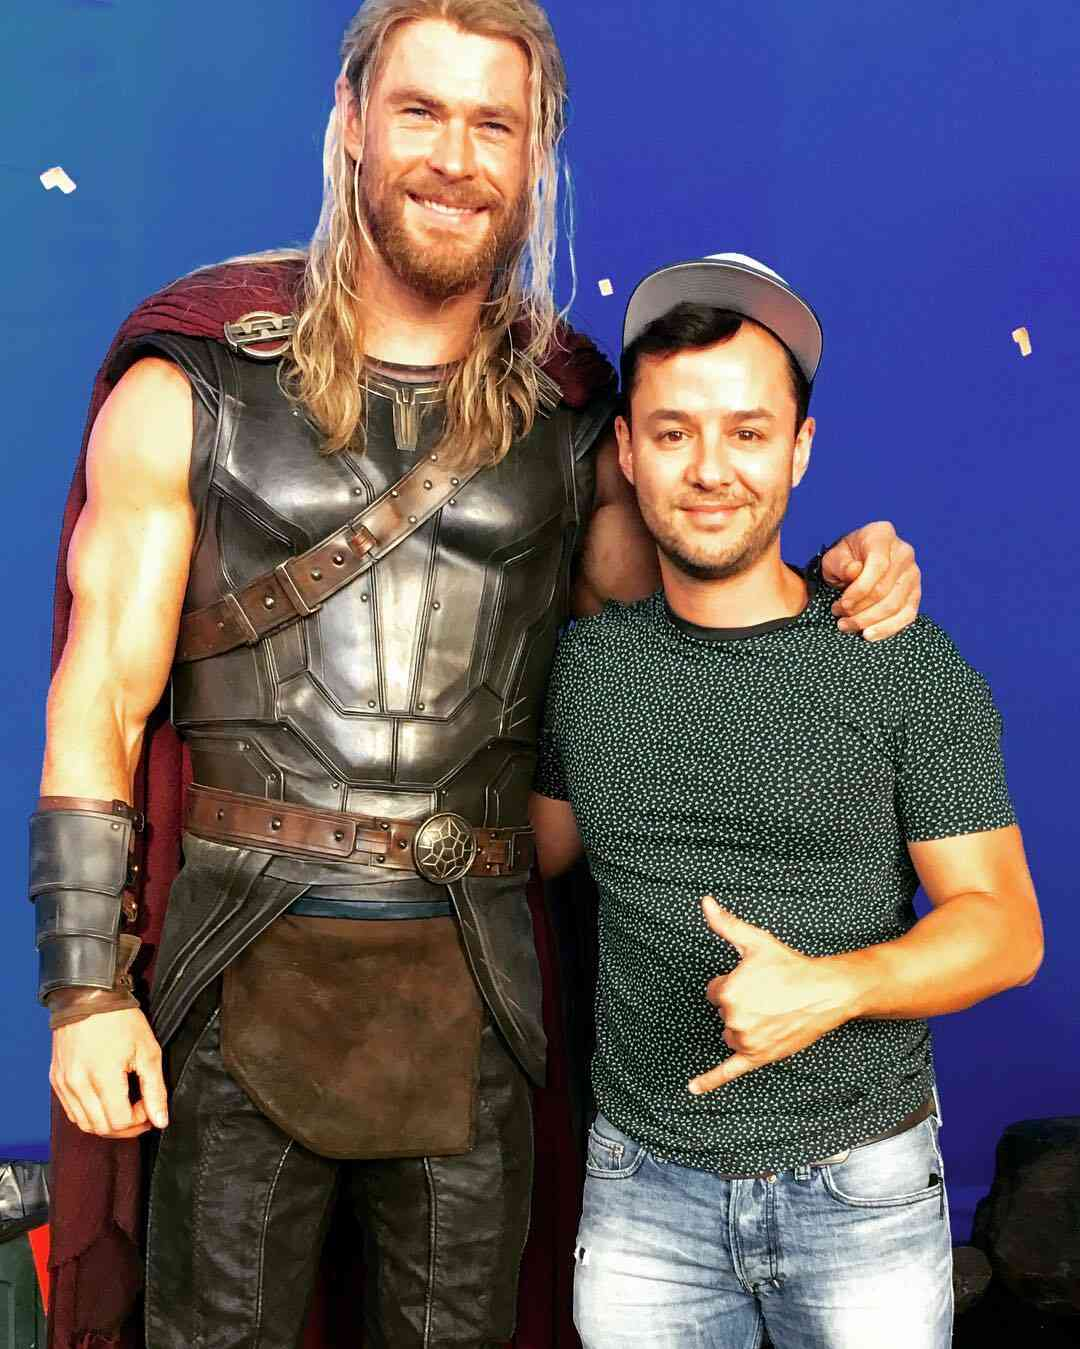 The Norse God of Thunder's costume has definitely gone through some modification for Thor: Ragnarok!